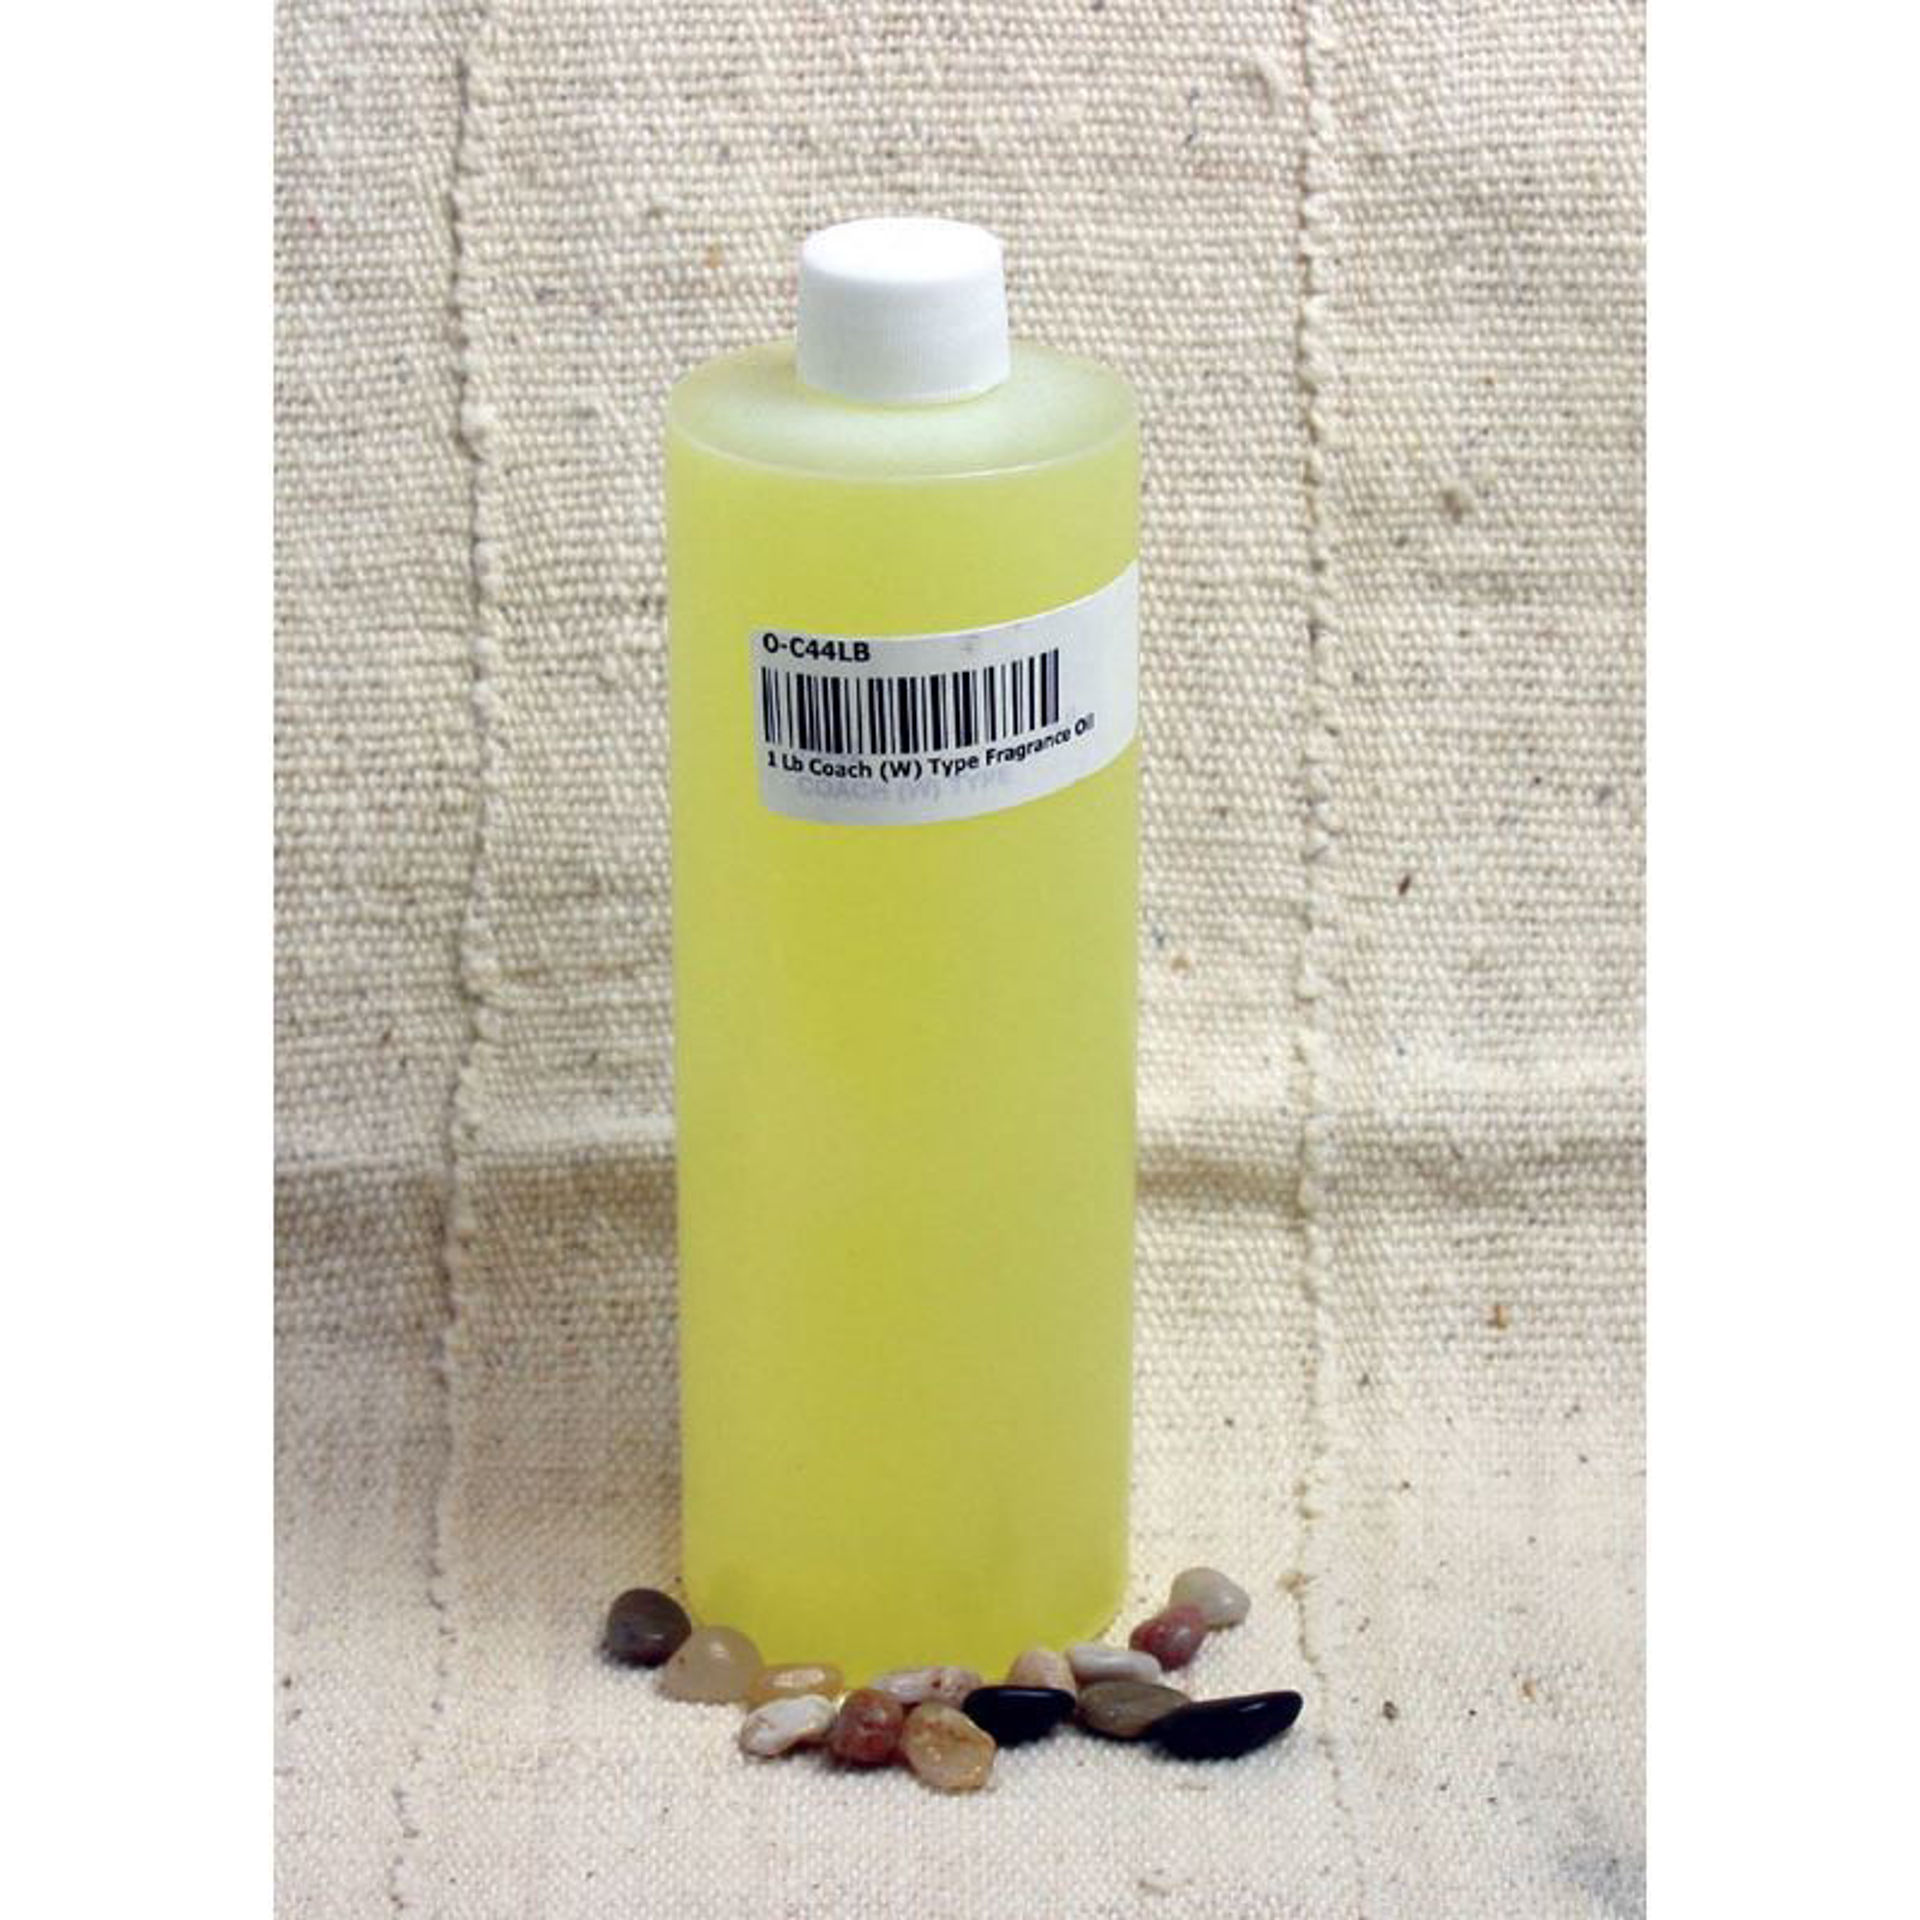 Picture of 1 Lb Coach (W) Type Fragrance Oil